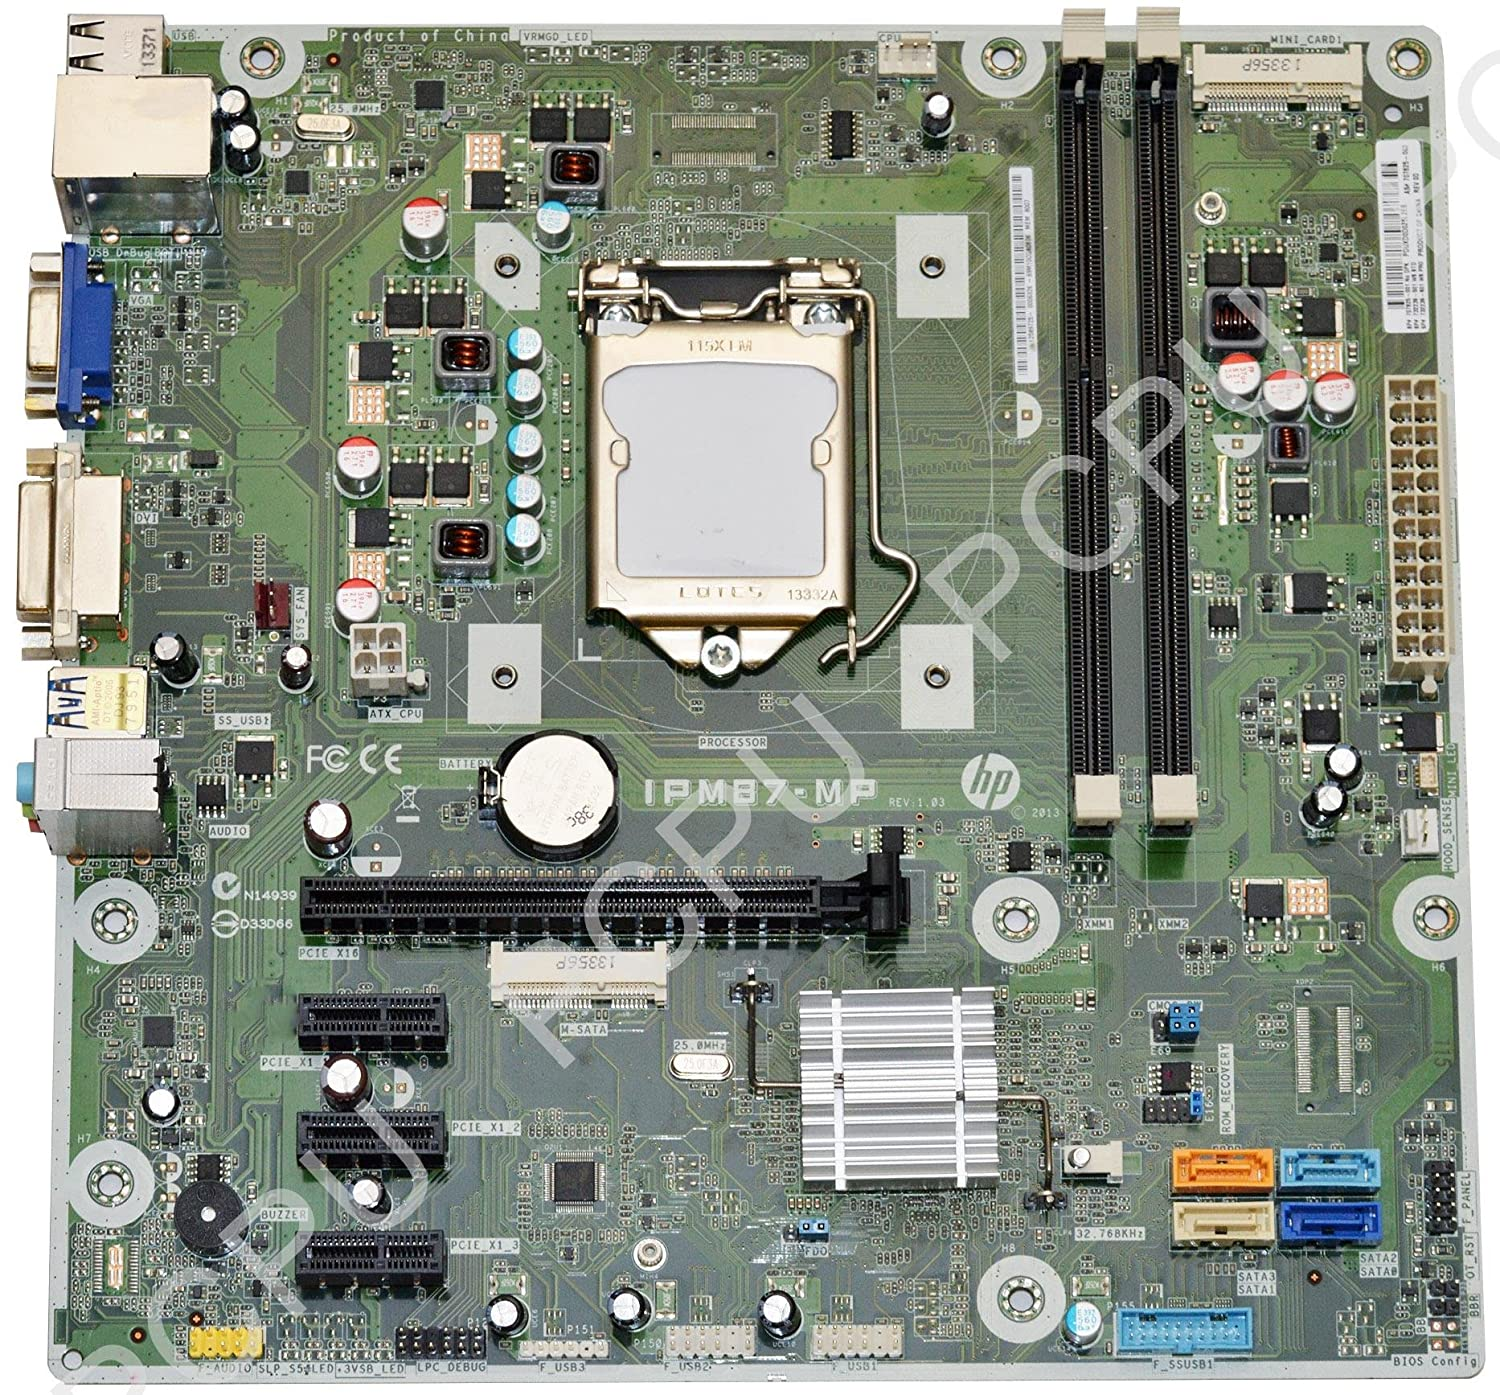 Amazon.com: 732239-502 HP Envy 700 Memphis-S Intel Desktop Motherboard  s115X: Computers & Accessories